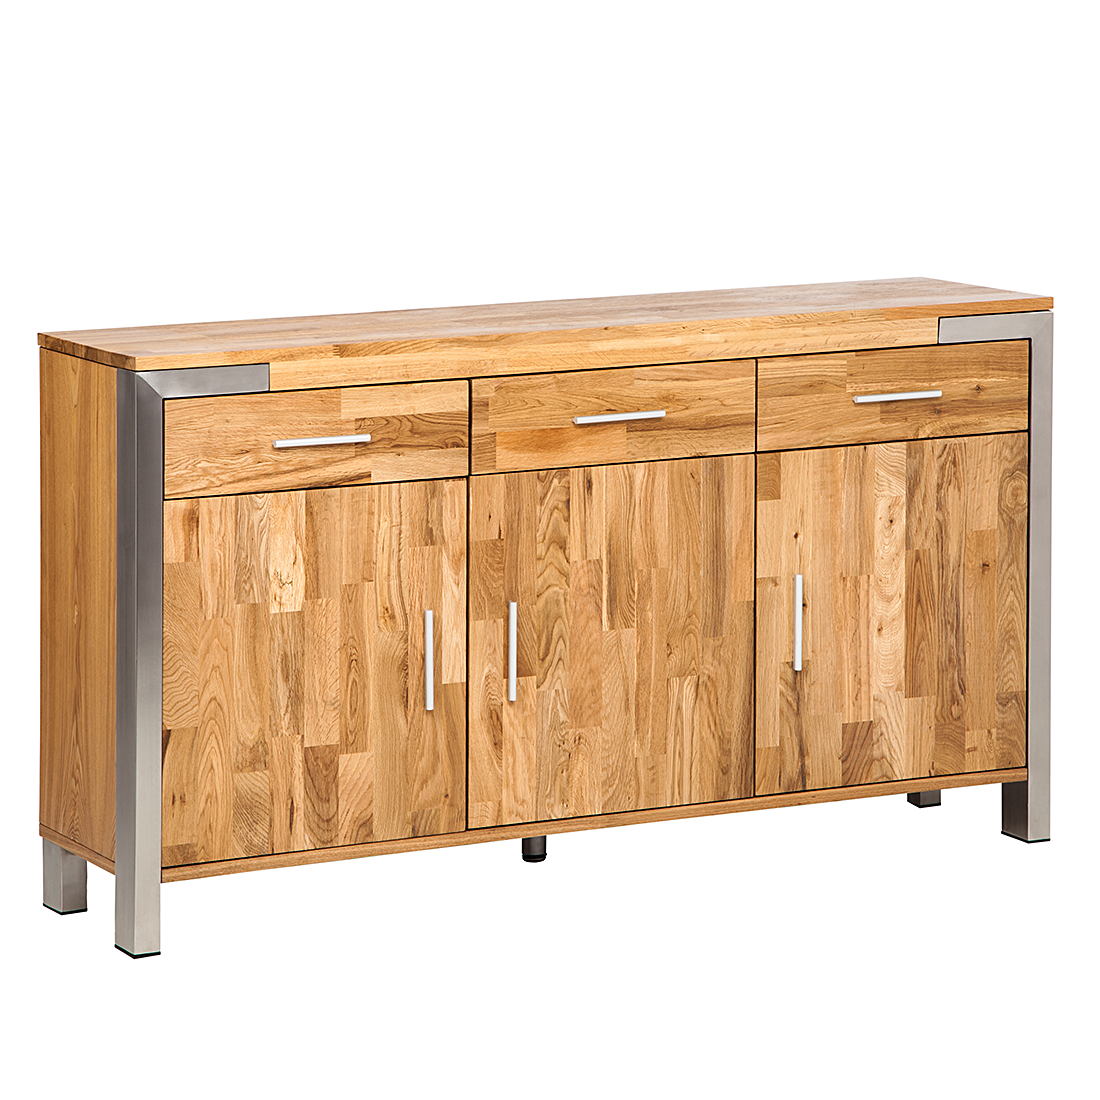 anrichte eiche massivholz edelstahl sideboard esszimmer buffet holz schrank neu ebay. Black Bedroom Furniture Sets. Home Design Ideas